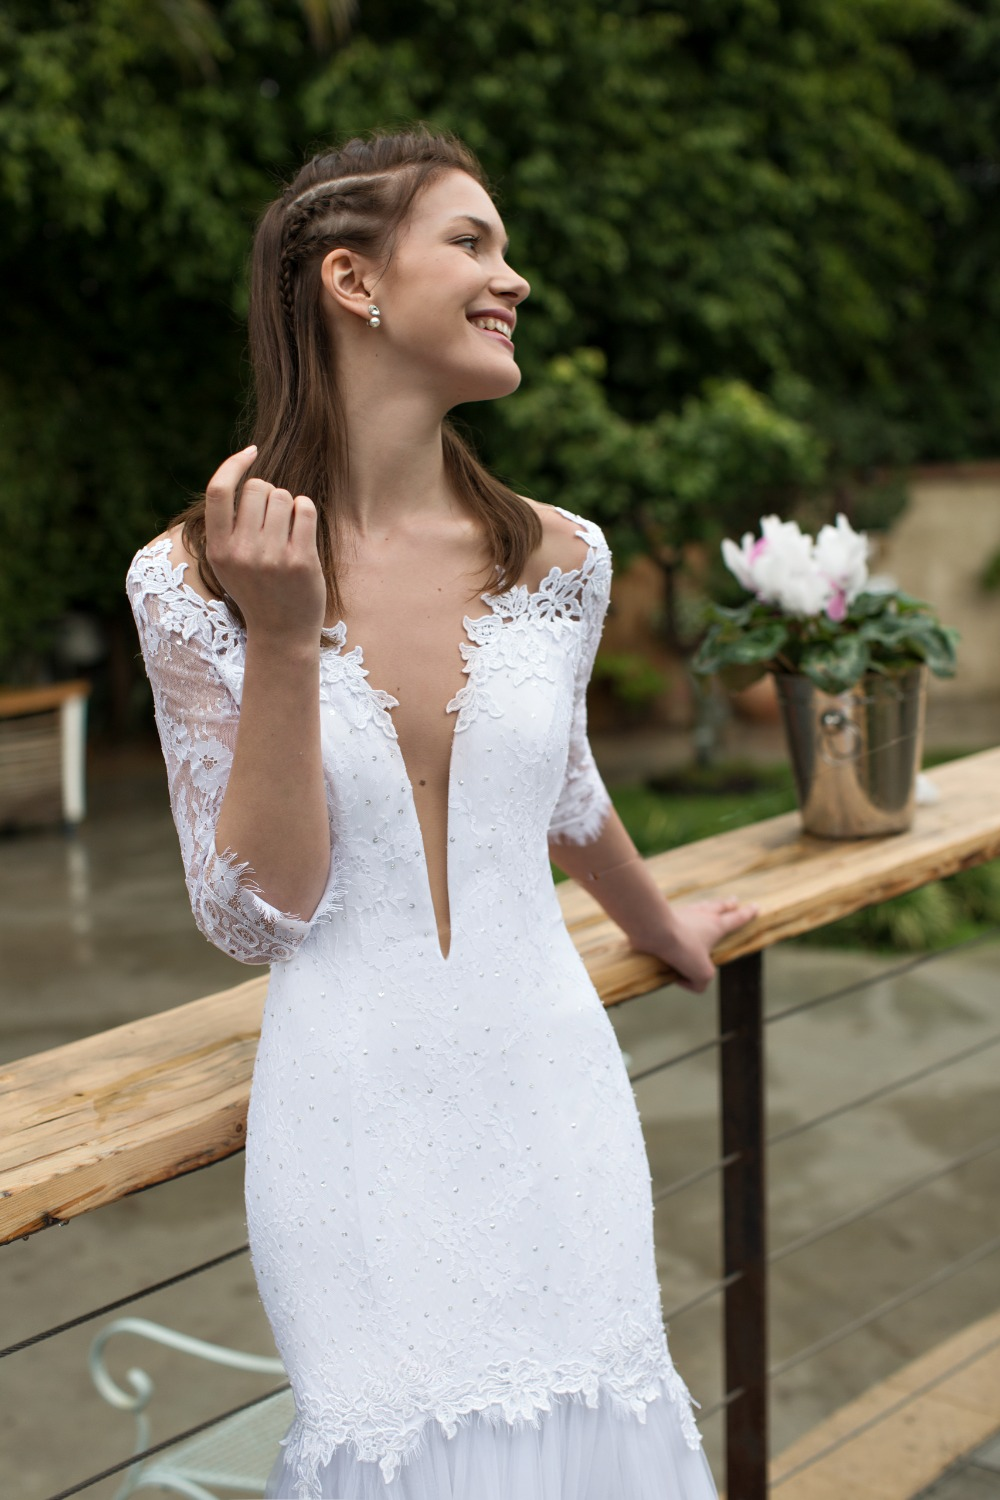 Noya Bridal Wedding Dress Collection